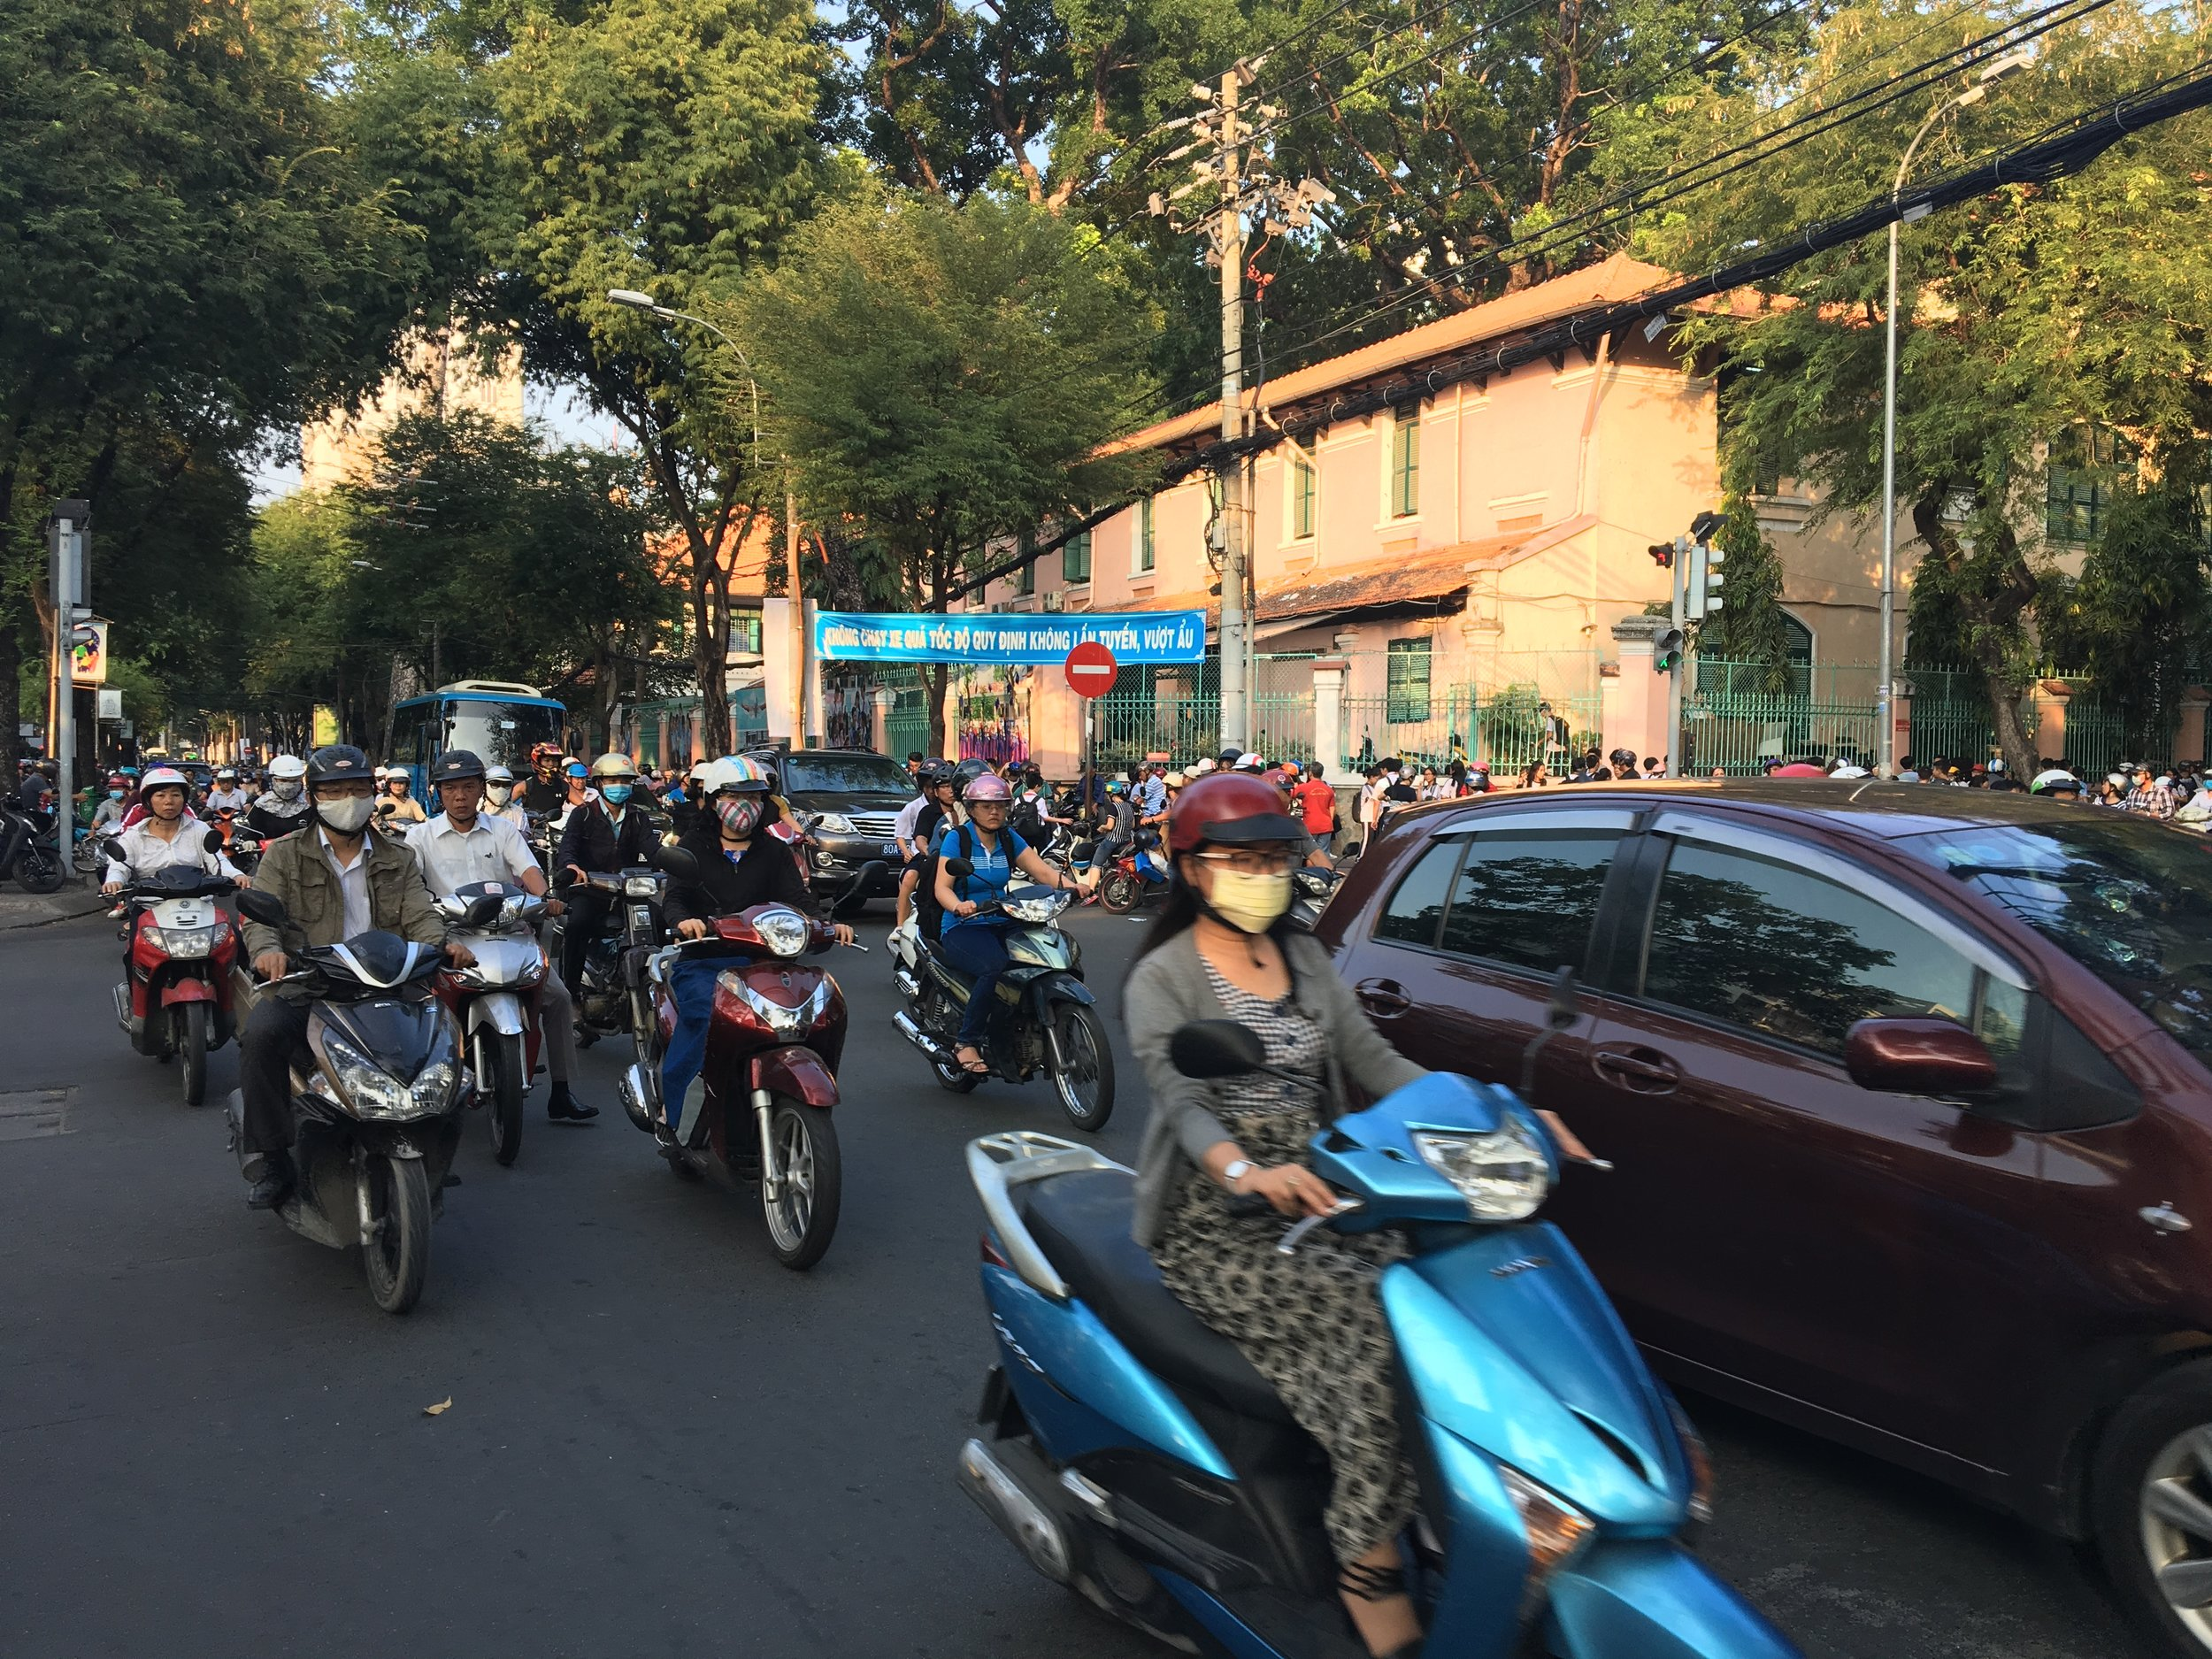 Traffic conditions in Saigon. It's pretty bad but not as bad as you think. The motorcycles go around you while you cross the roads.